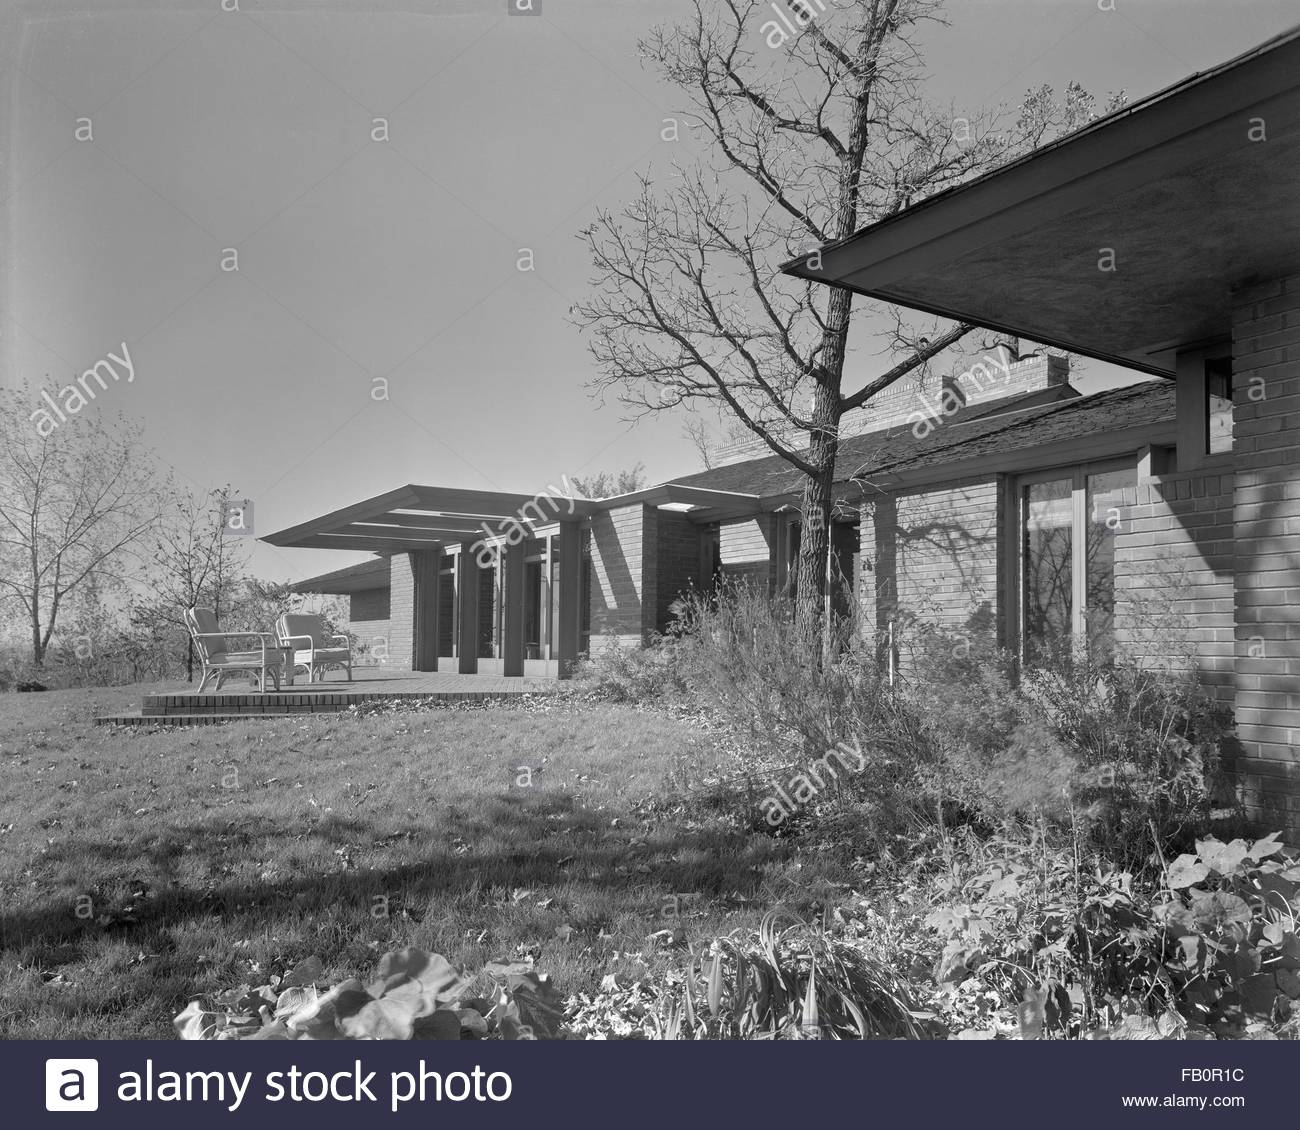 Malcom E. Willey residence in Minneapolis (Minn.), 1937 Dec. Exterior view of a single-story, brick house with wood - Stock Image